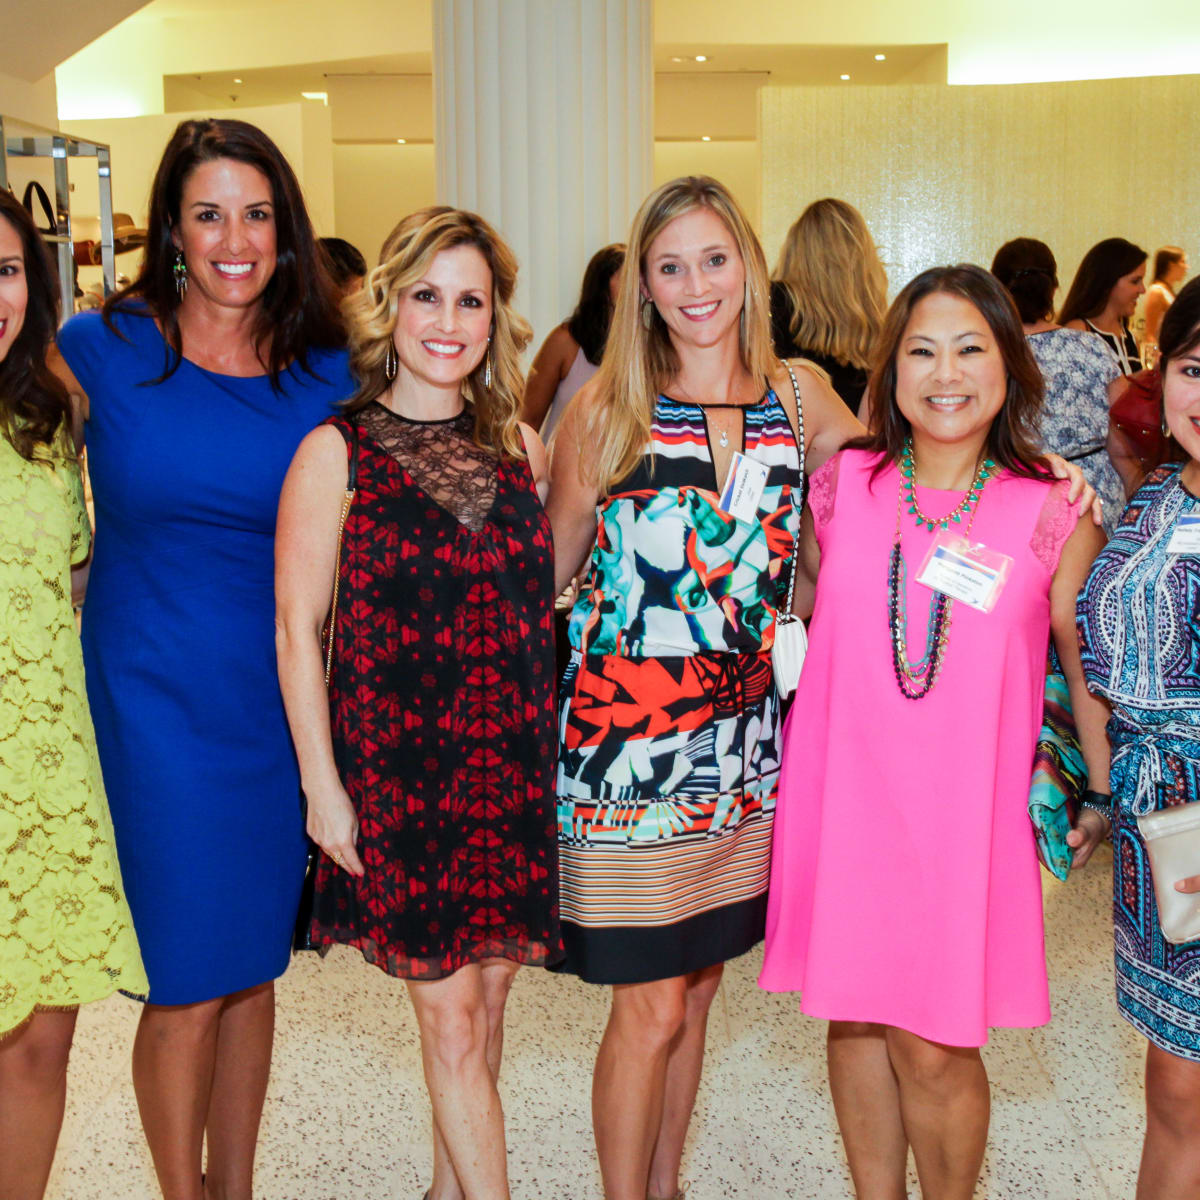 Houston, Ellevate event at Tootsies, August 2015, Kristin Hamilton, Jody Martin, Sharon Ainsworth, Cricket DeWalsh, Margaret Lee Pinkston, Nallely Trujillo-Conley